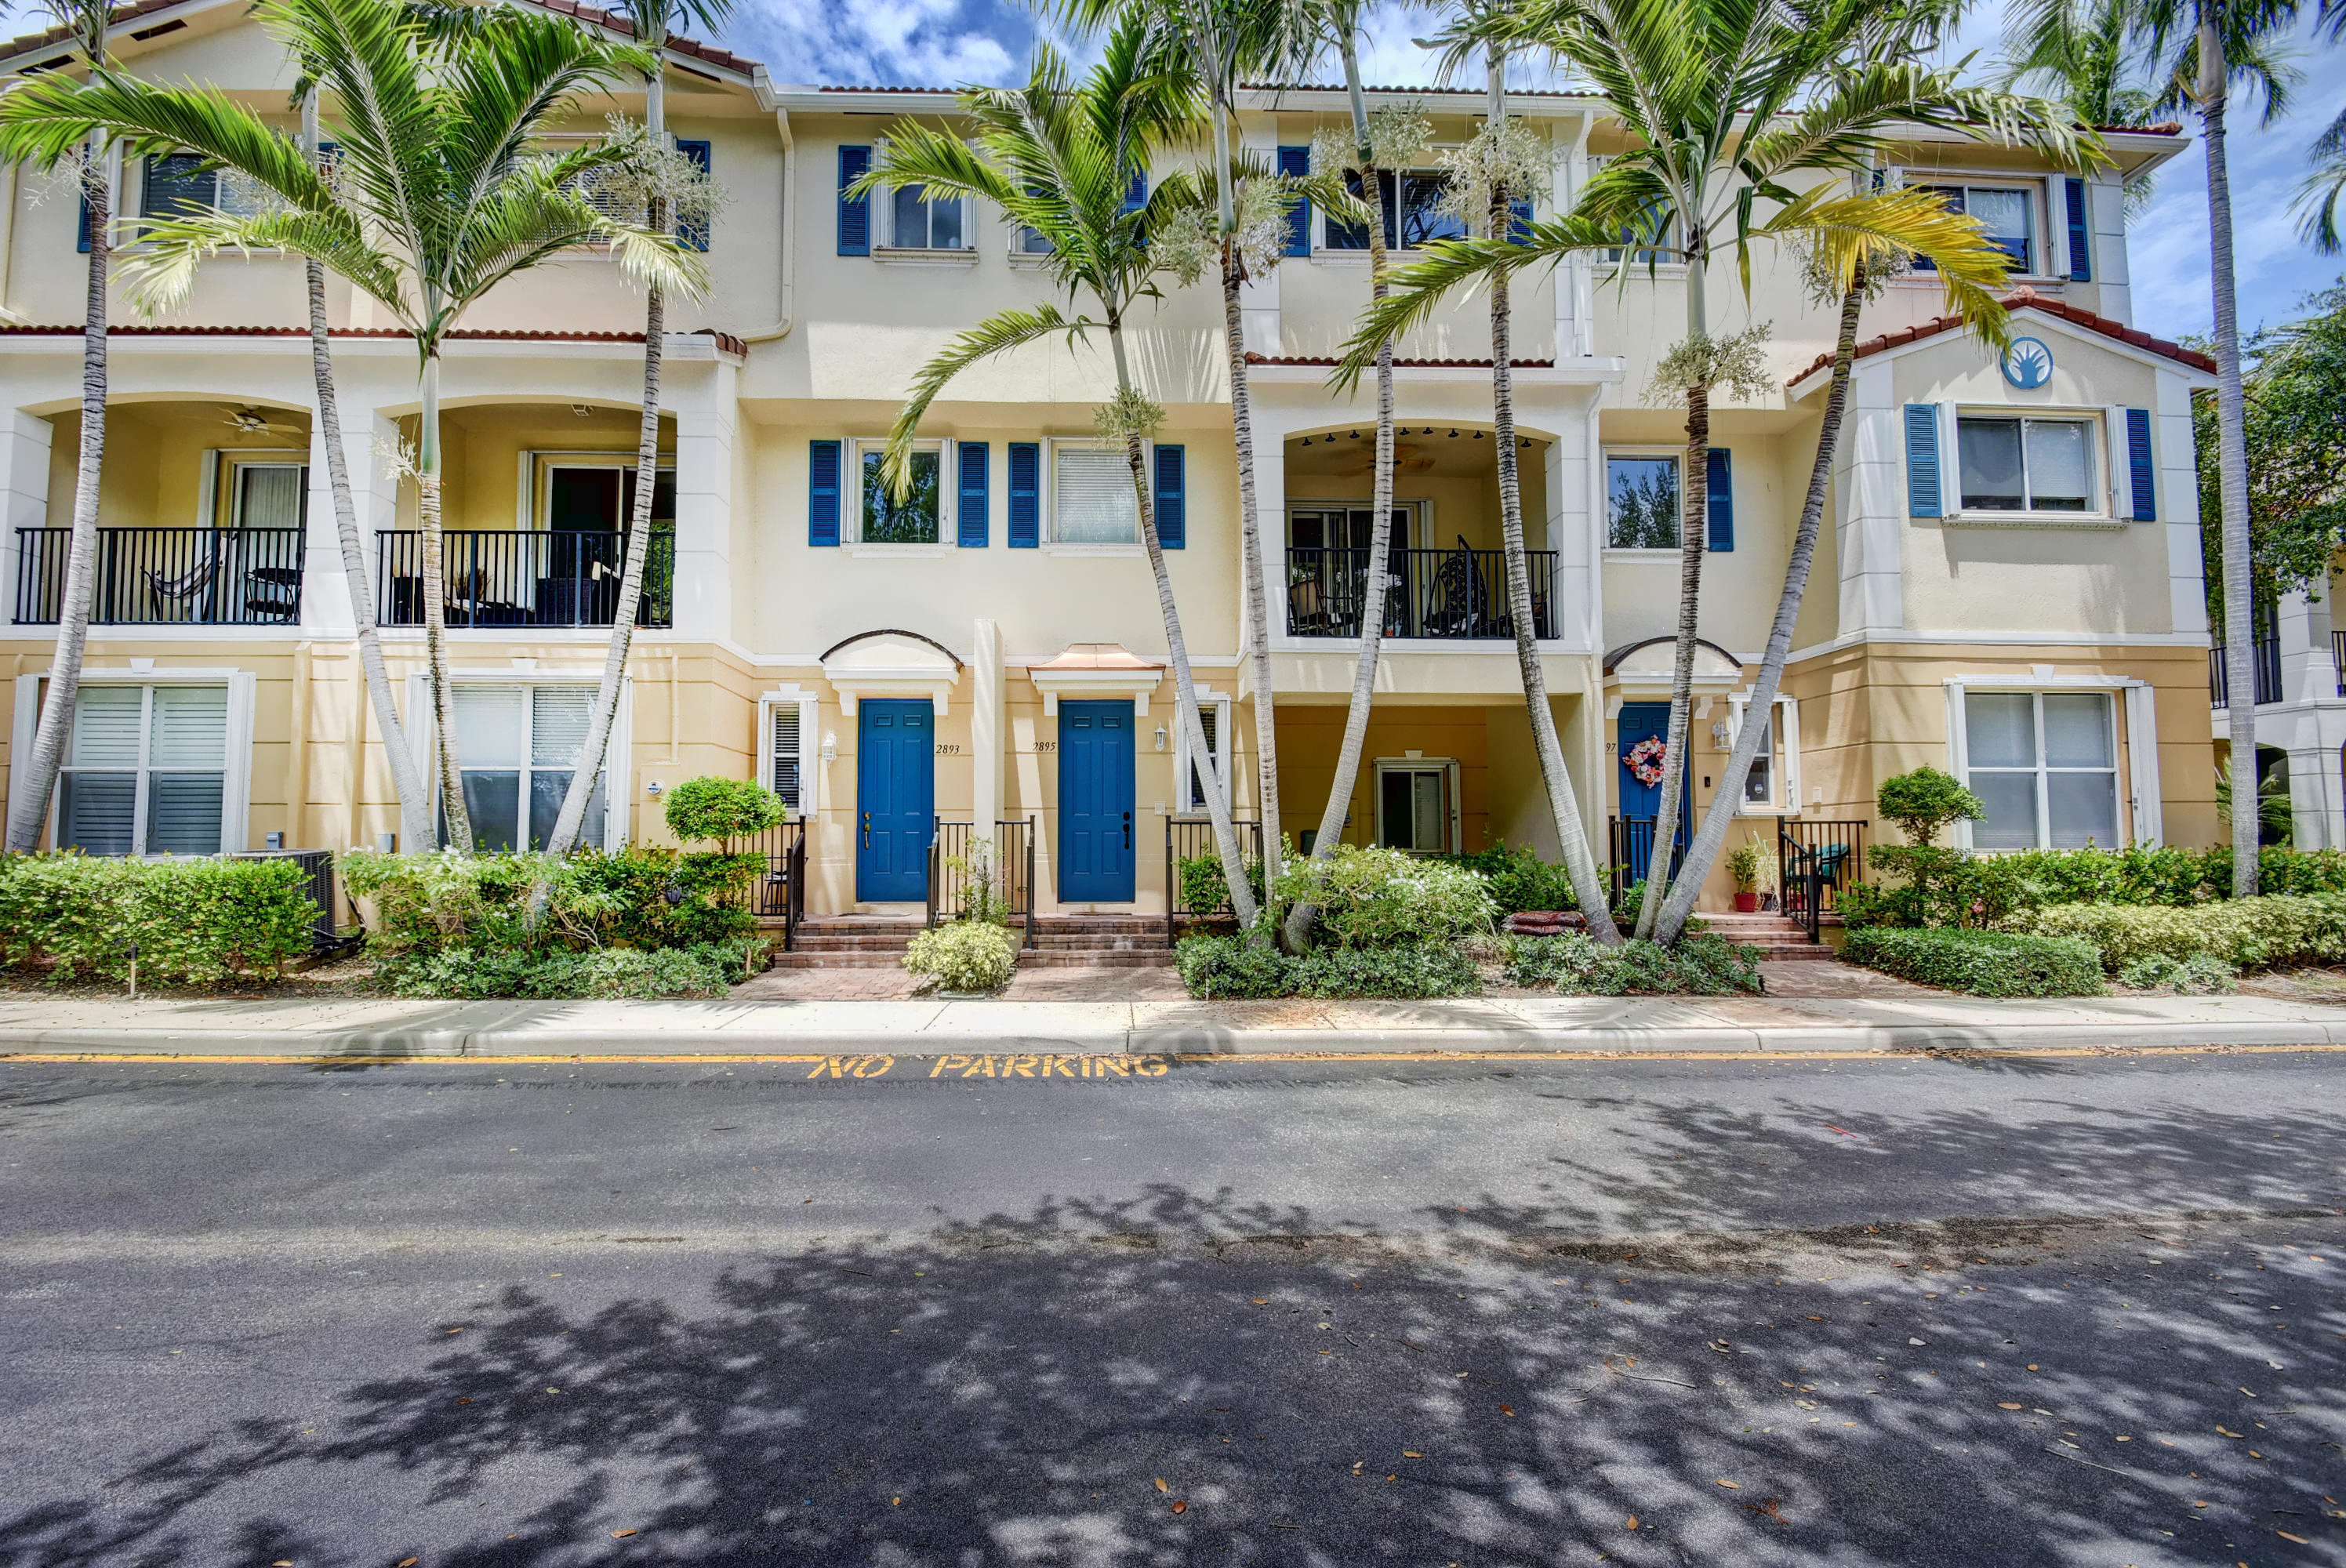 Home for sale in QUANTUM PARK TOWNHOMES, Parkside Square Boynton Beach Florida